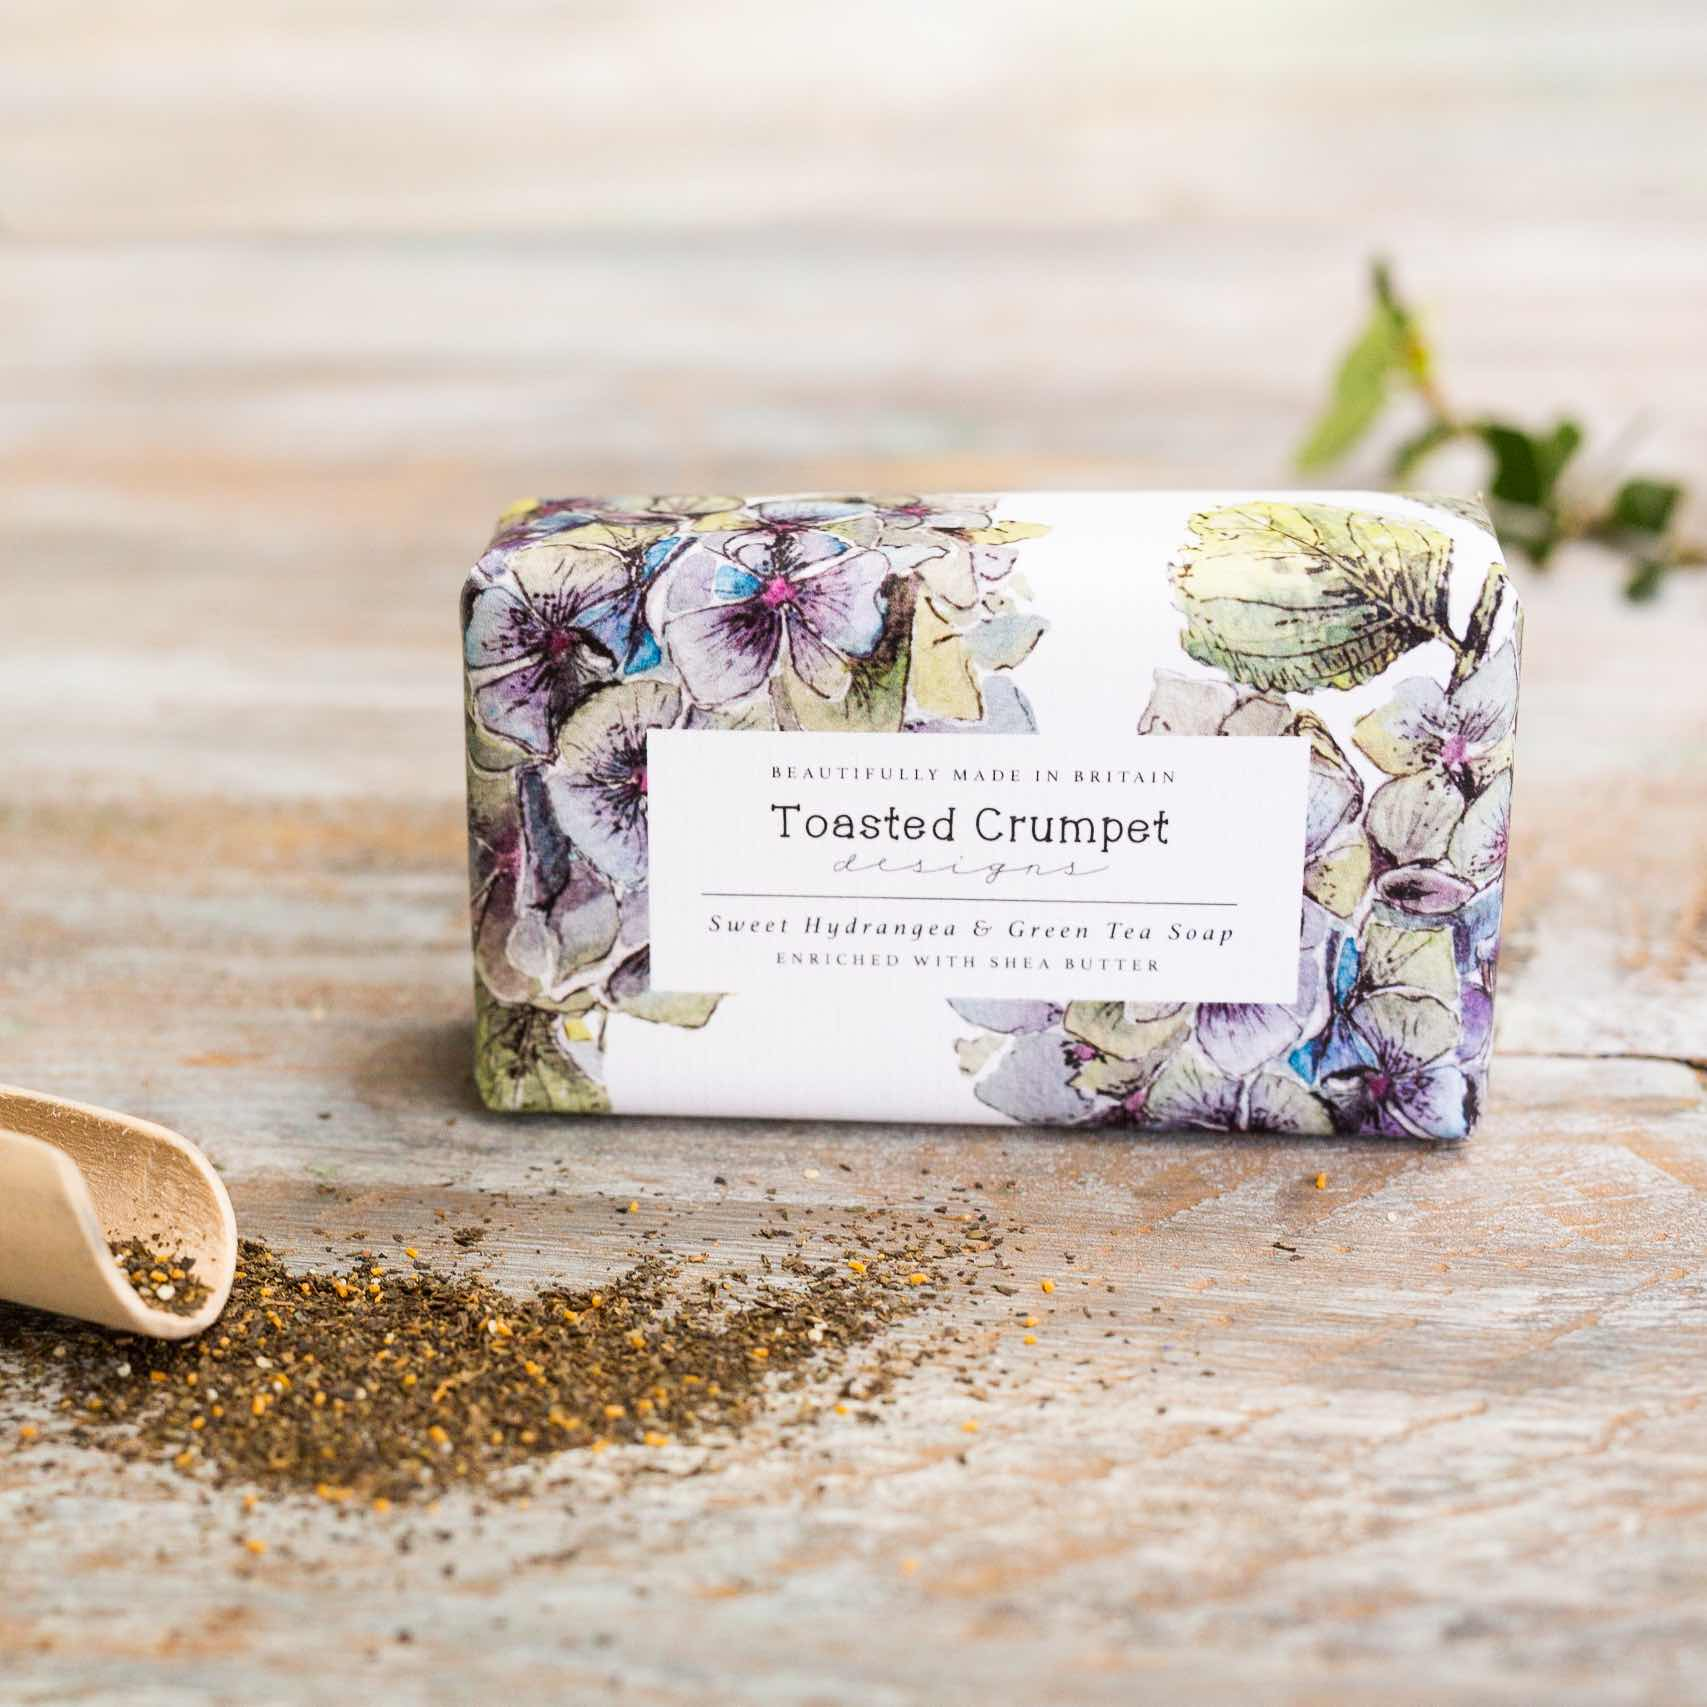 Sweet hydrangea & green tea soap